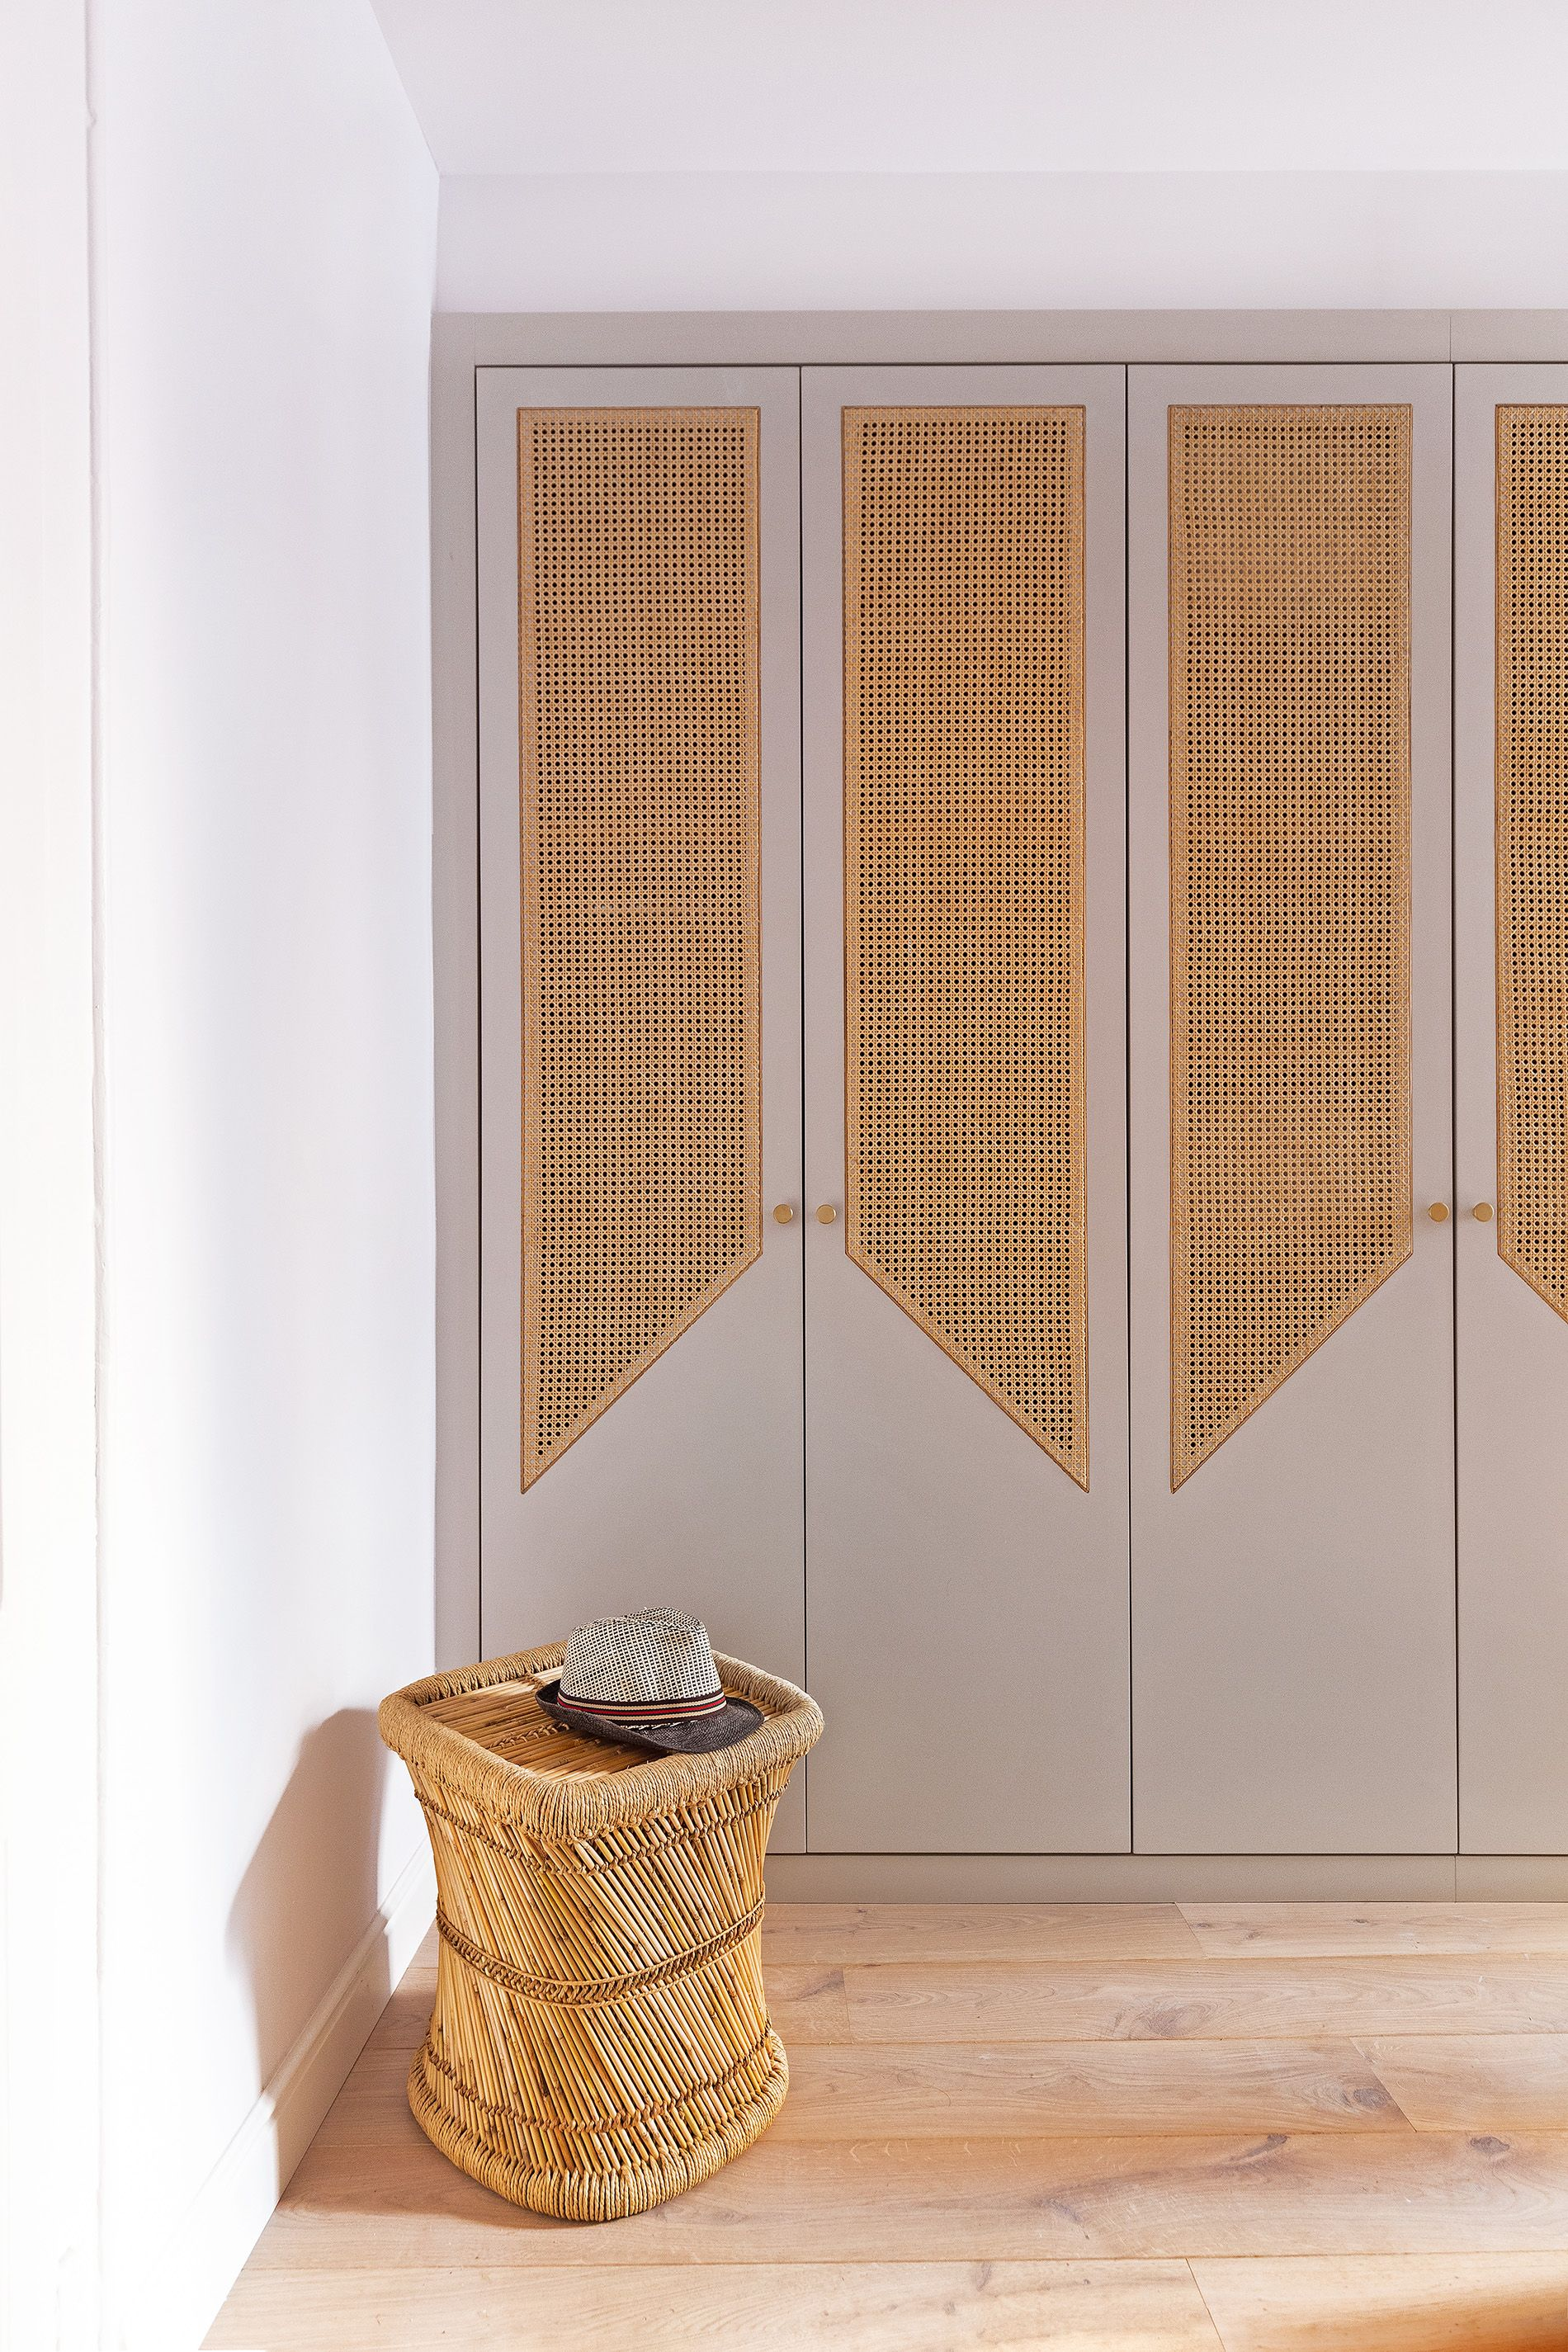 grey cupboard, rattan accent, wooden floor, rattan ottoman, white wall